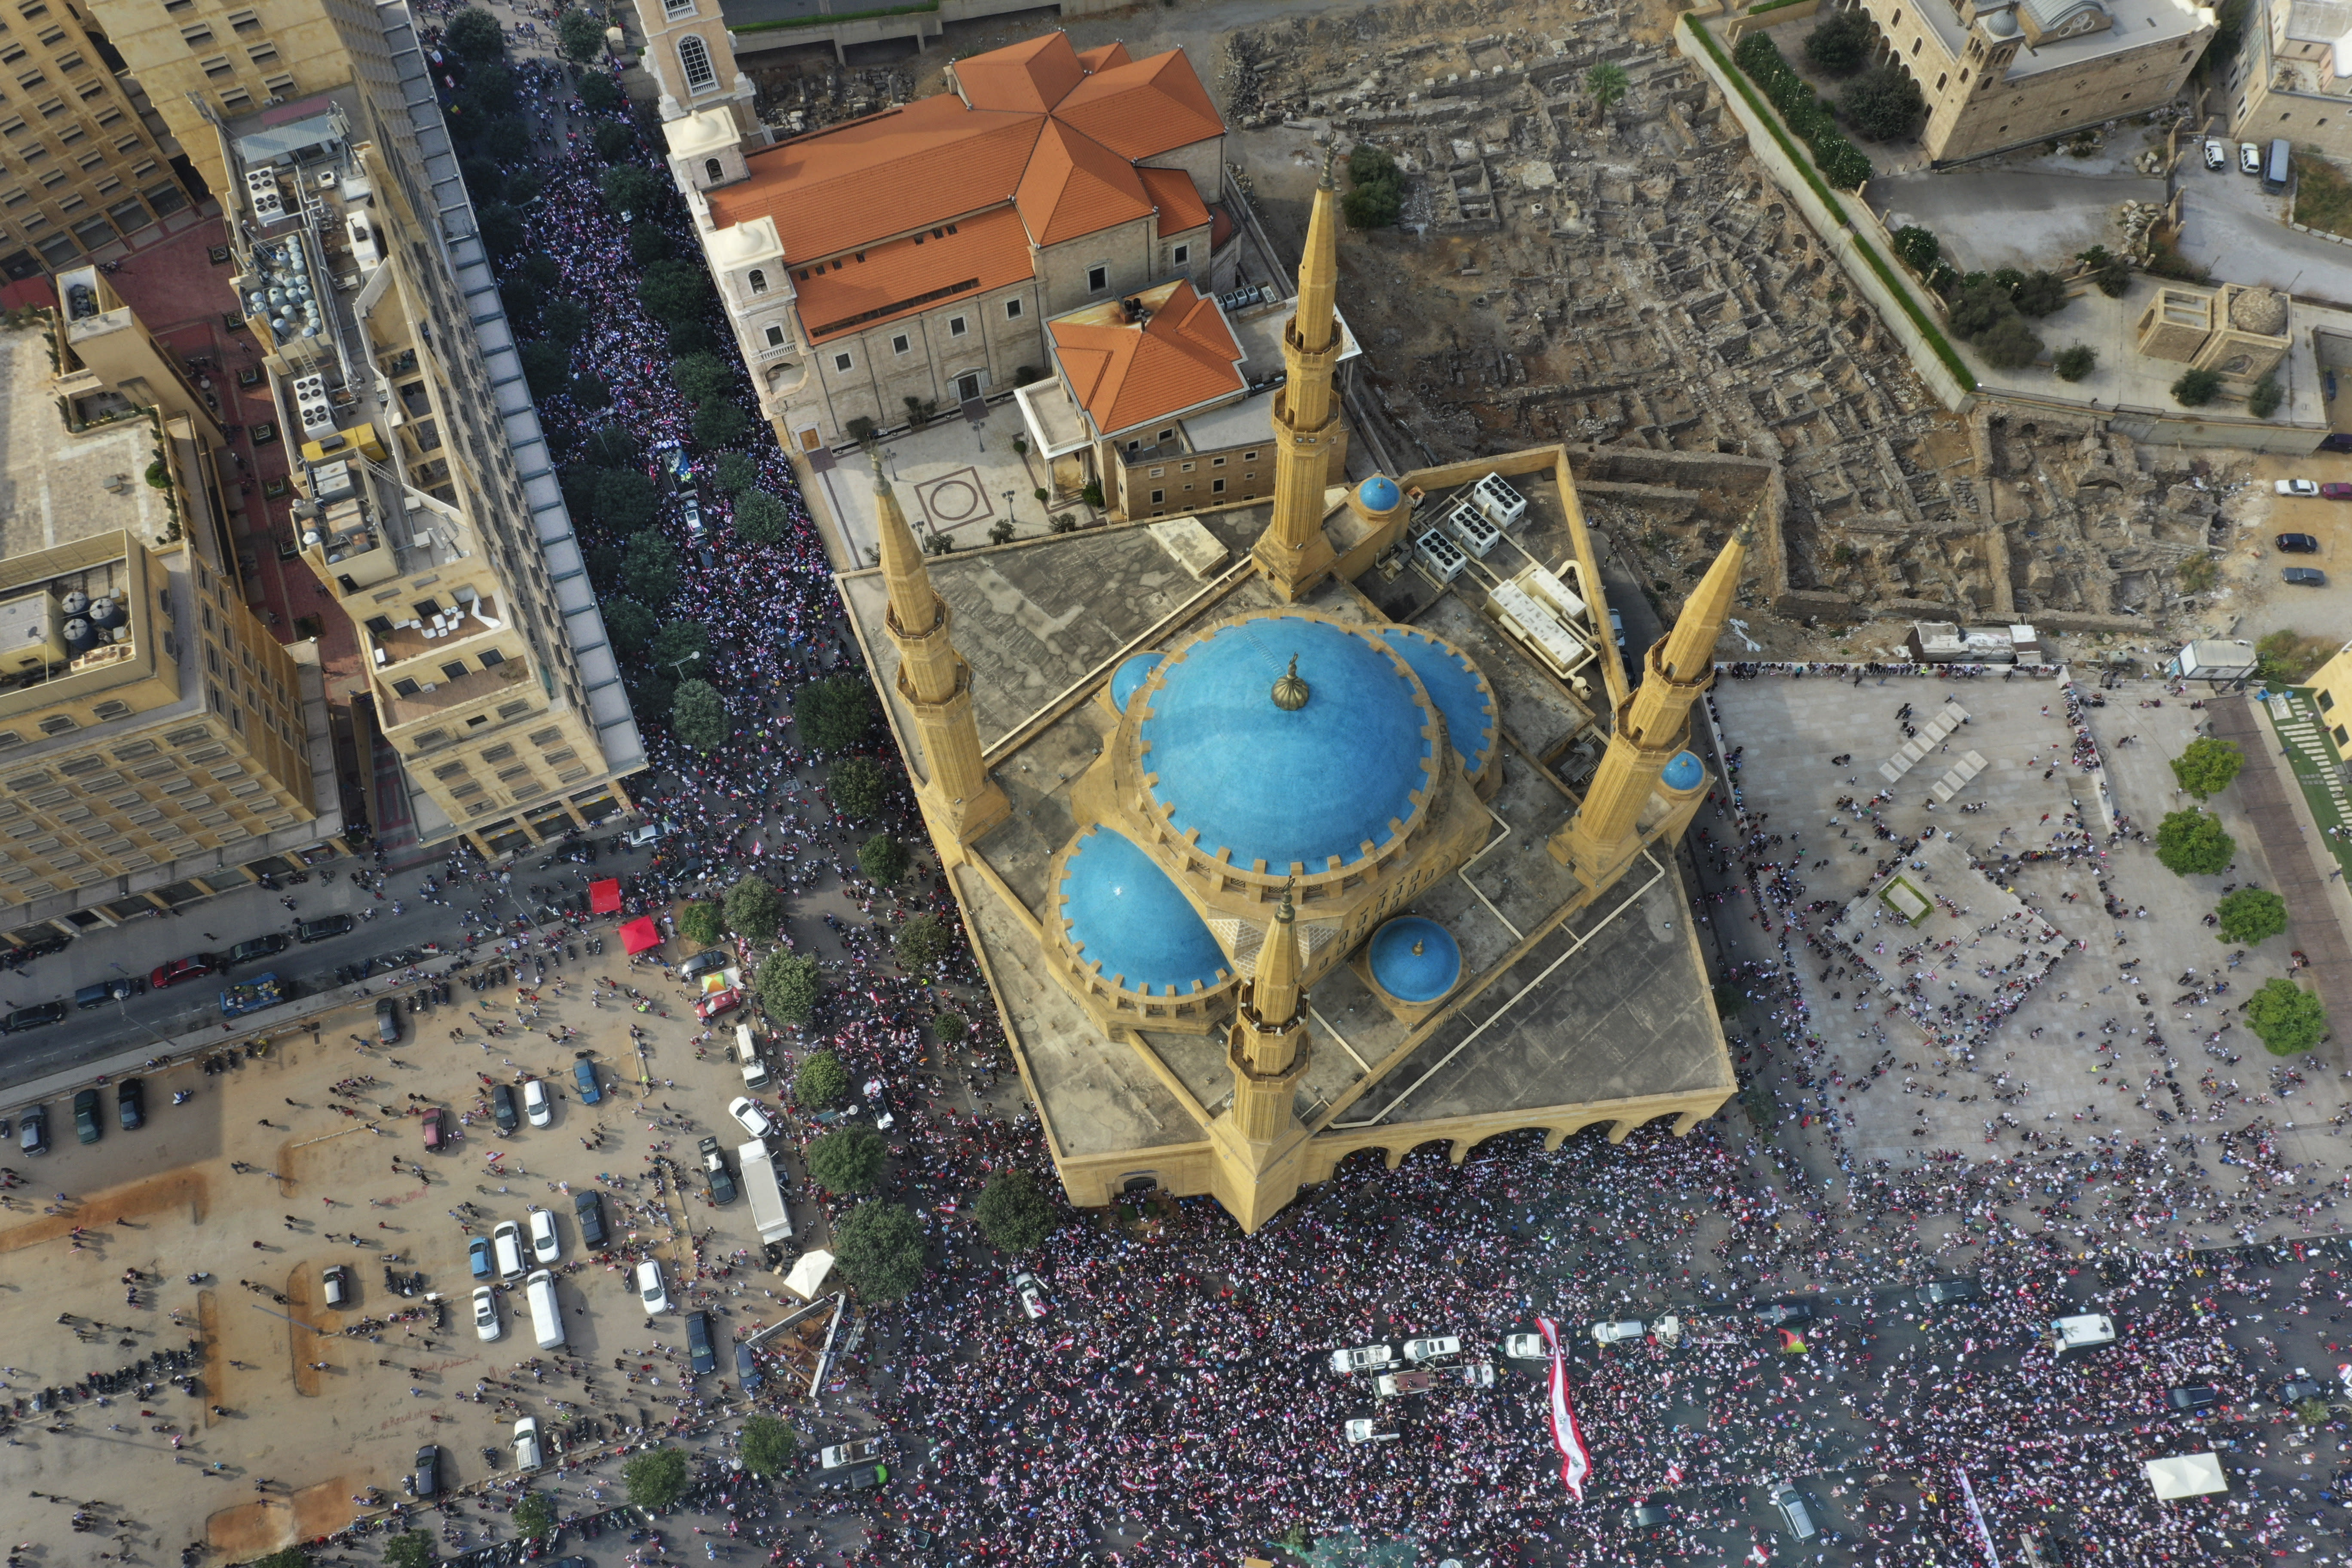 FILE - In this Sunday, Oct. 20, 2019 file photo, an aerial view shows anti-government protest, in downtown Beirut, Lebanon. A year ago, hundreds of thousands of Lebanese took to the streets in protests nationwide that raised hopes among many for a change in a political elite that over that decades has run the country into the ground. (AP Photo/Hussein Malla, File)